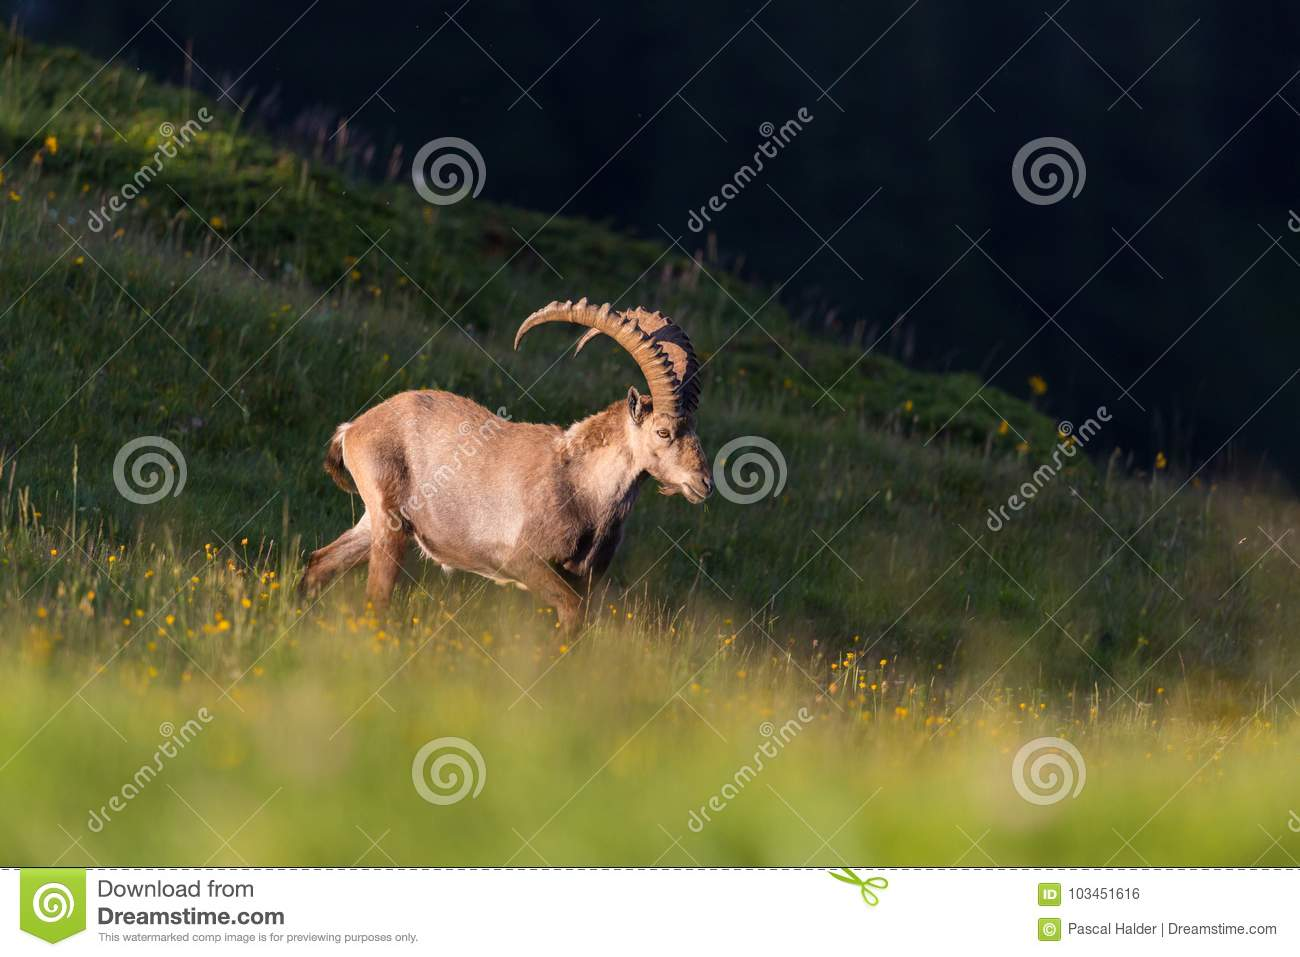 Natural adult male alpine capra ibex capricorn in evening light